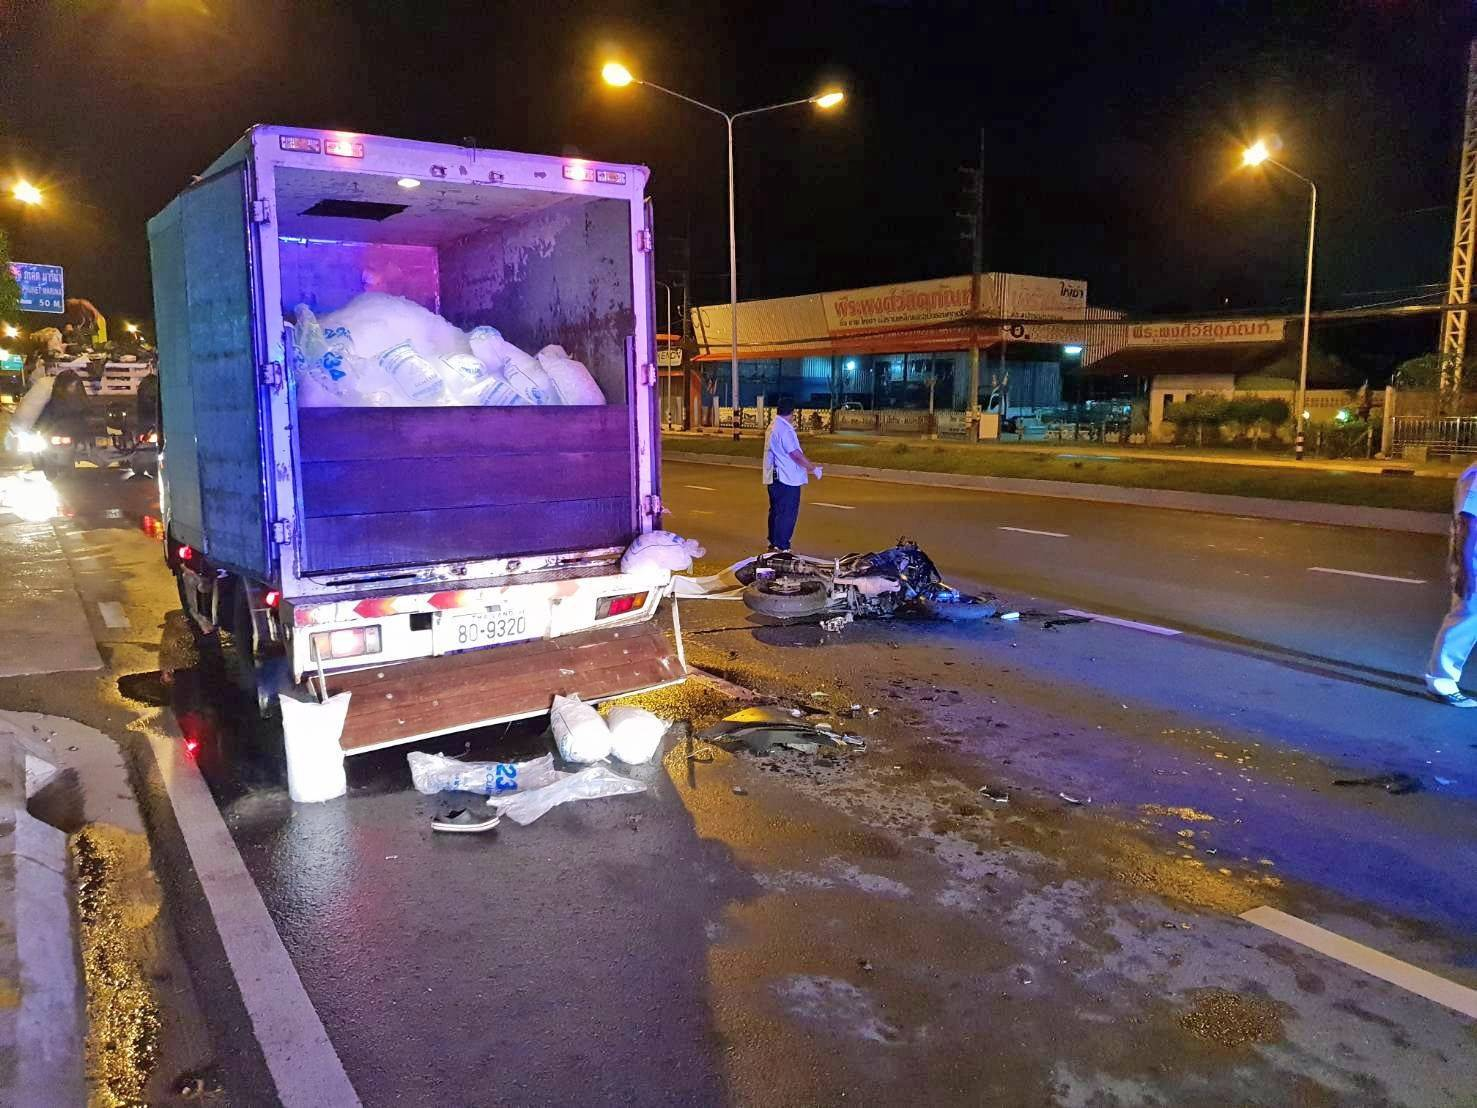 Big-bike rider killed on Phuket road | The Thaiger